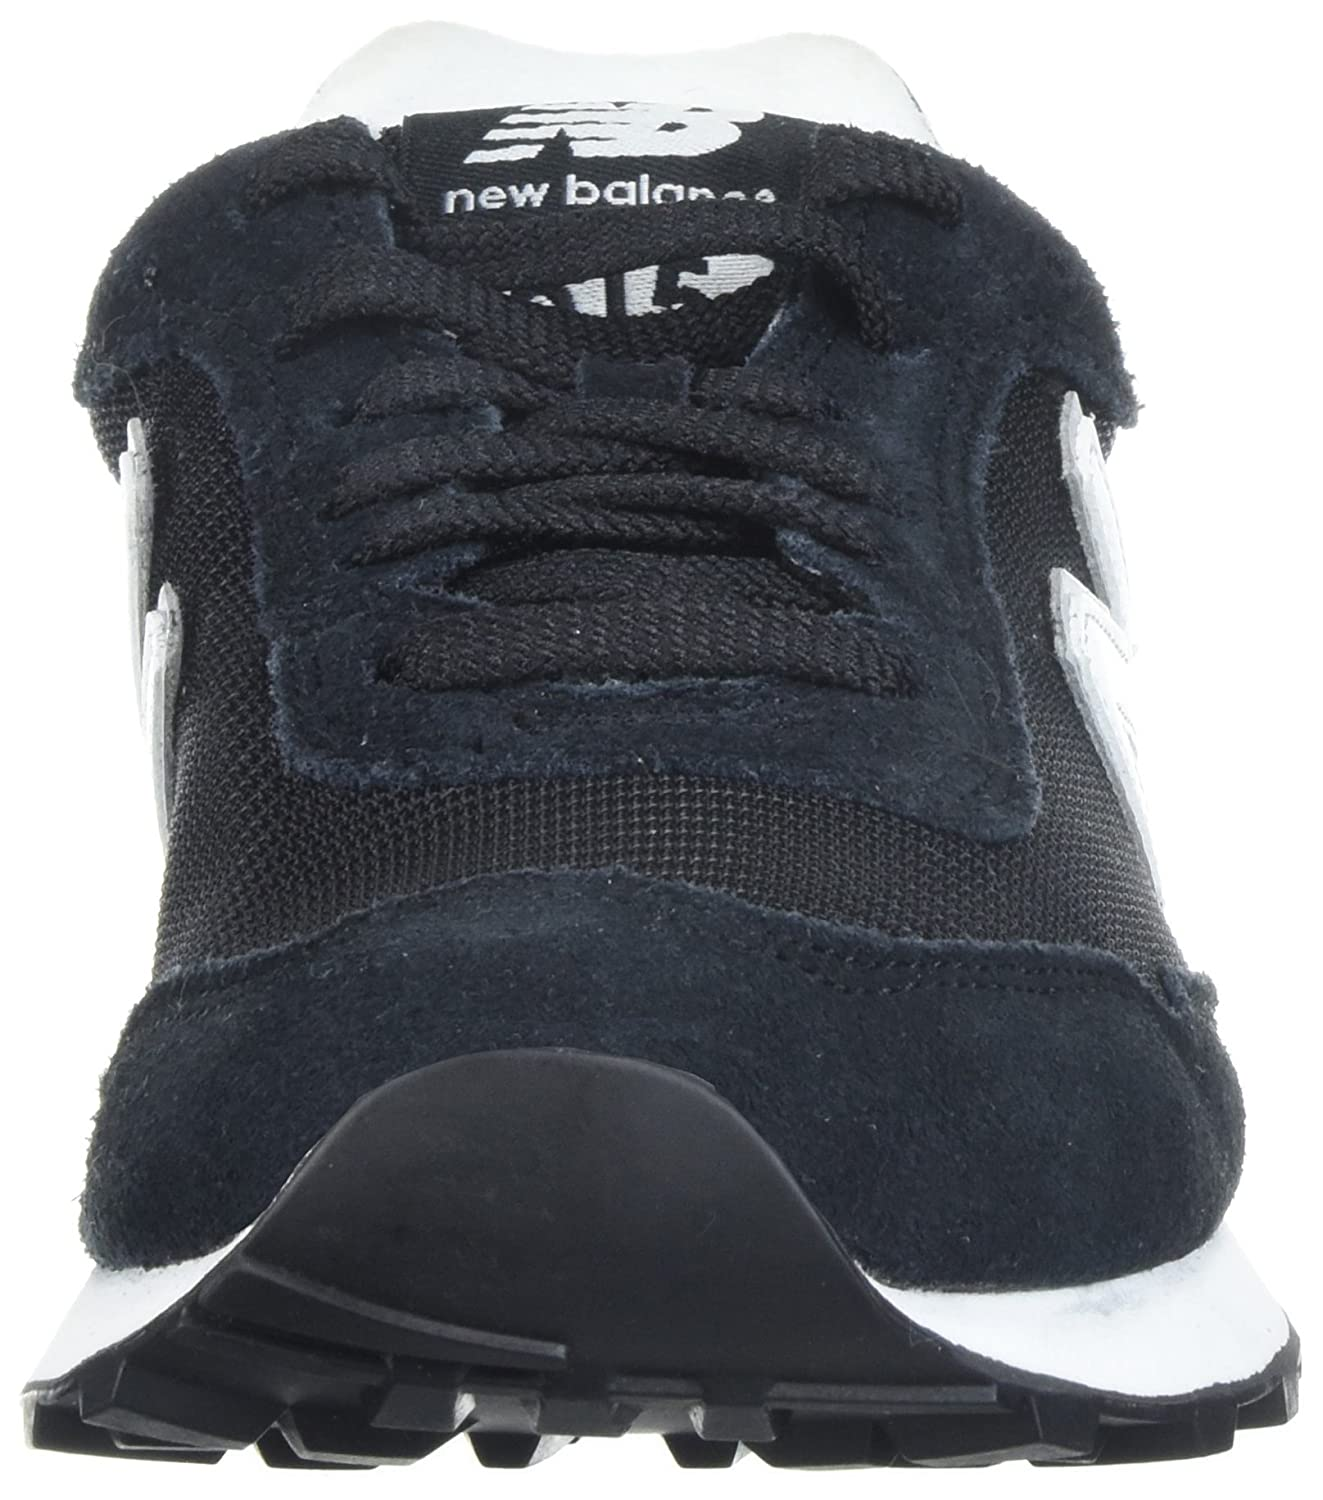 New Balance Women's 515v1 Lifestyle Sneaker B075R7NCKV 5.5 W US|Black